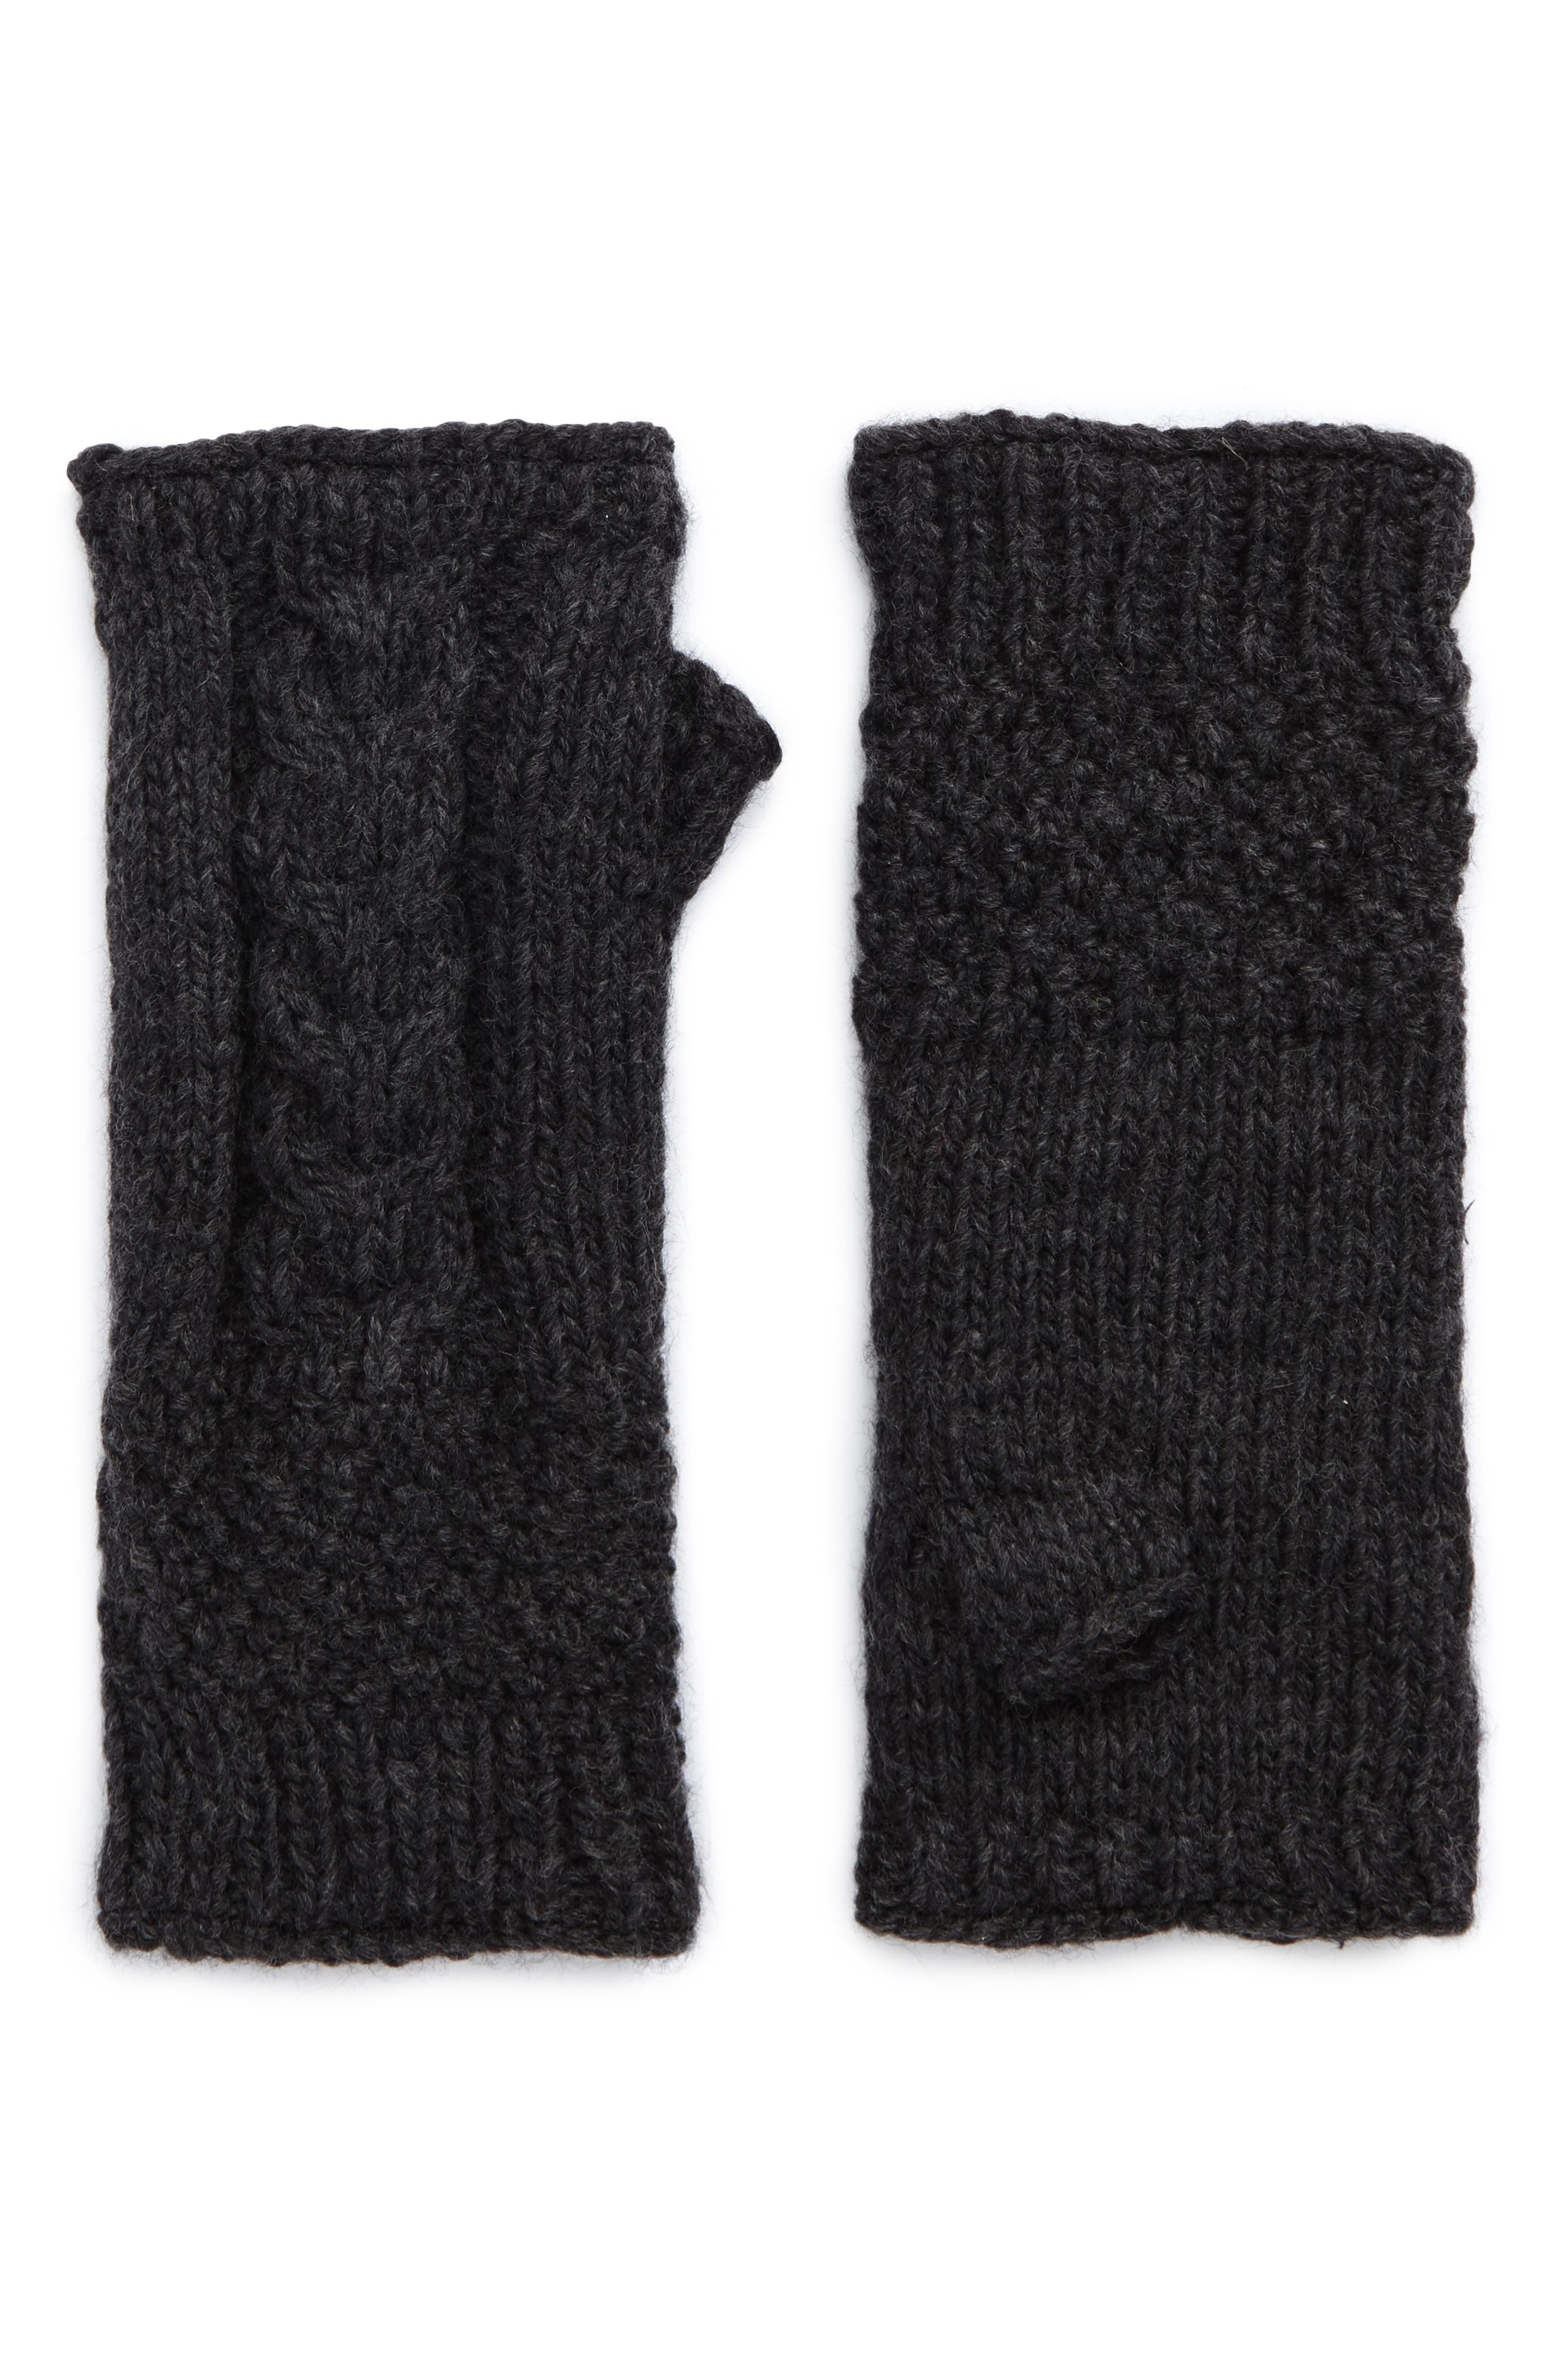 Main Image - NirvannaDesigns Cable Knit Hand Warmers